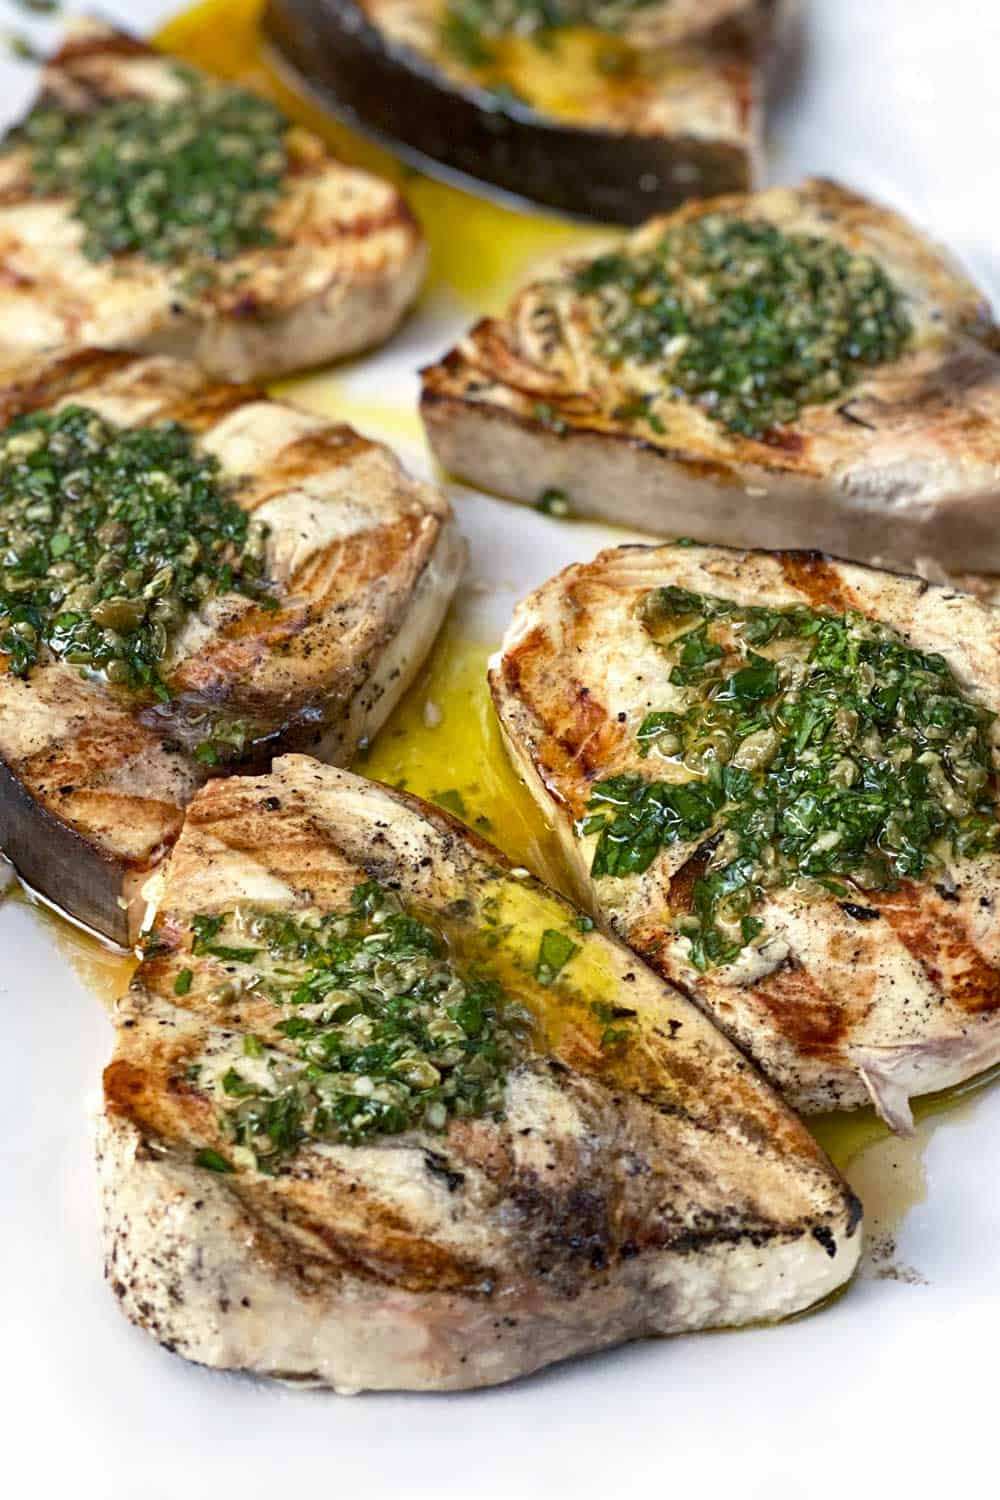 5 grilled swordfish steaks topped with salsa verde